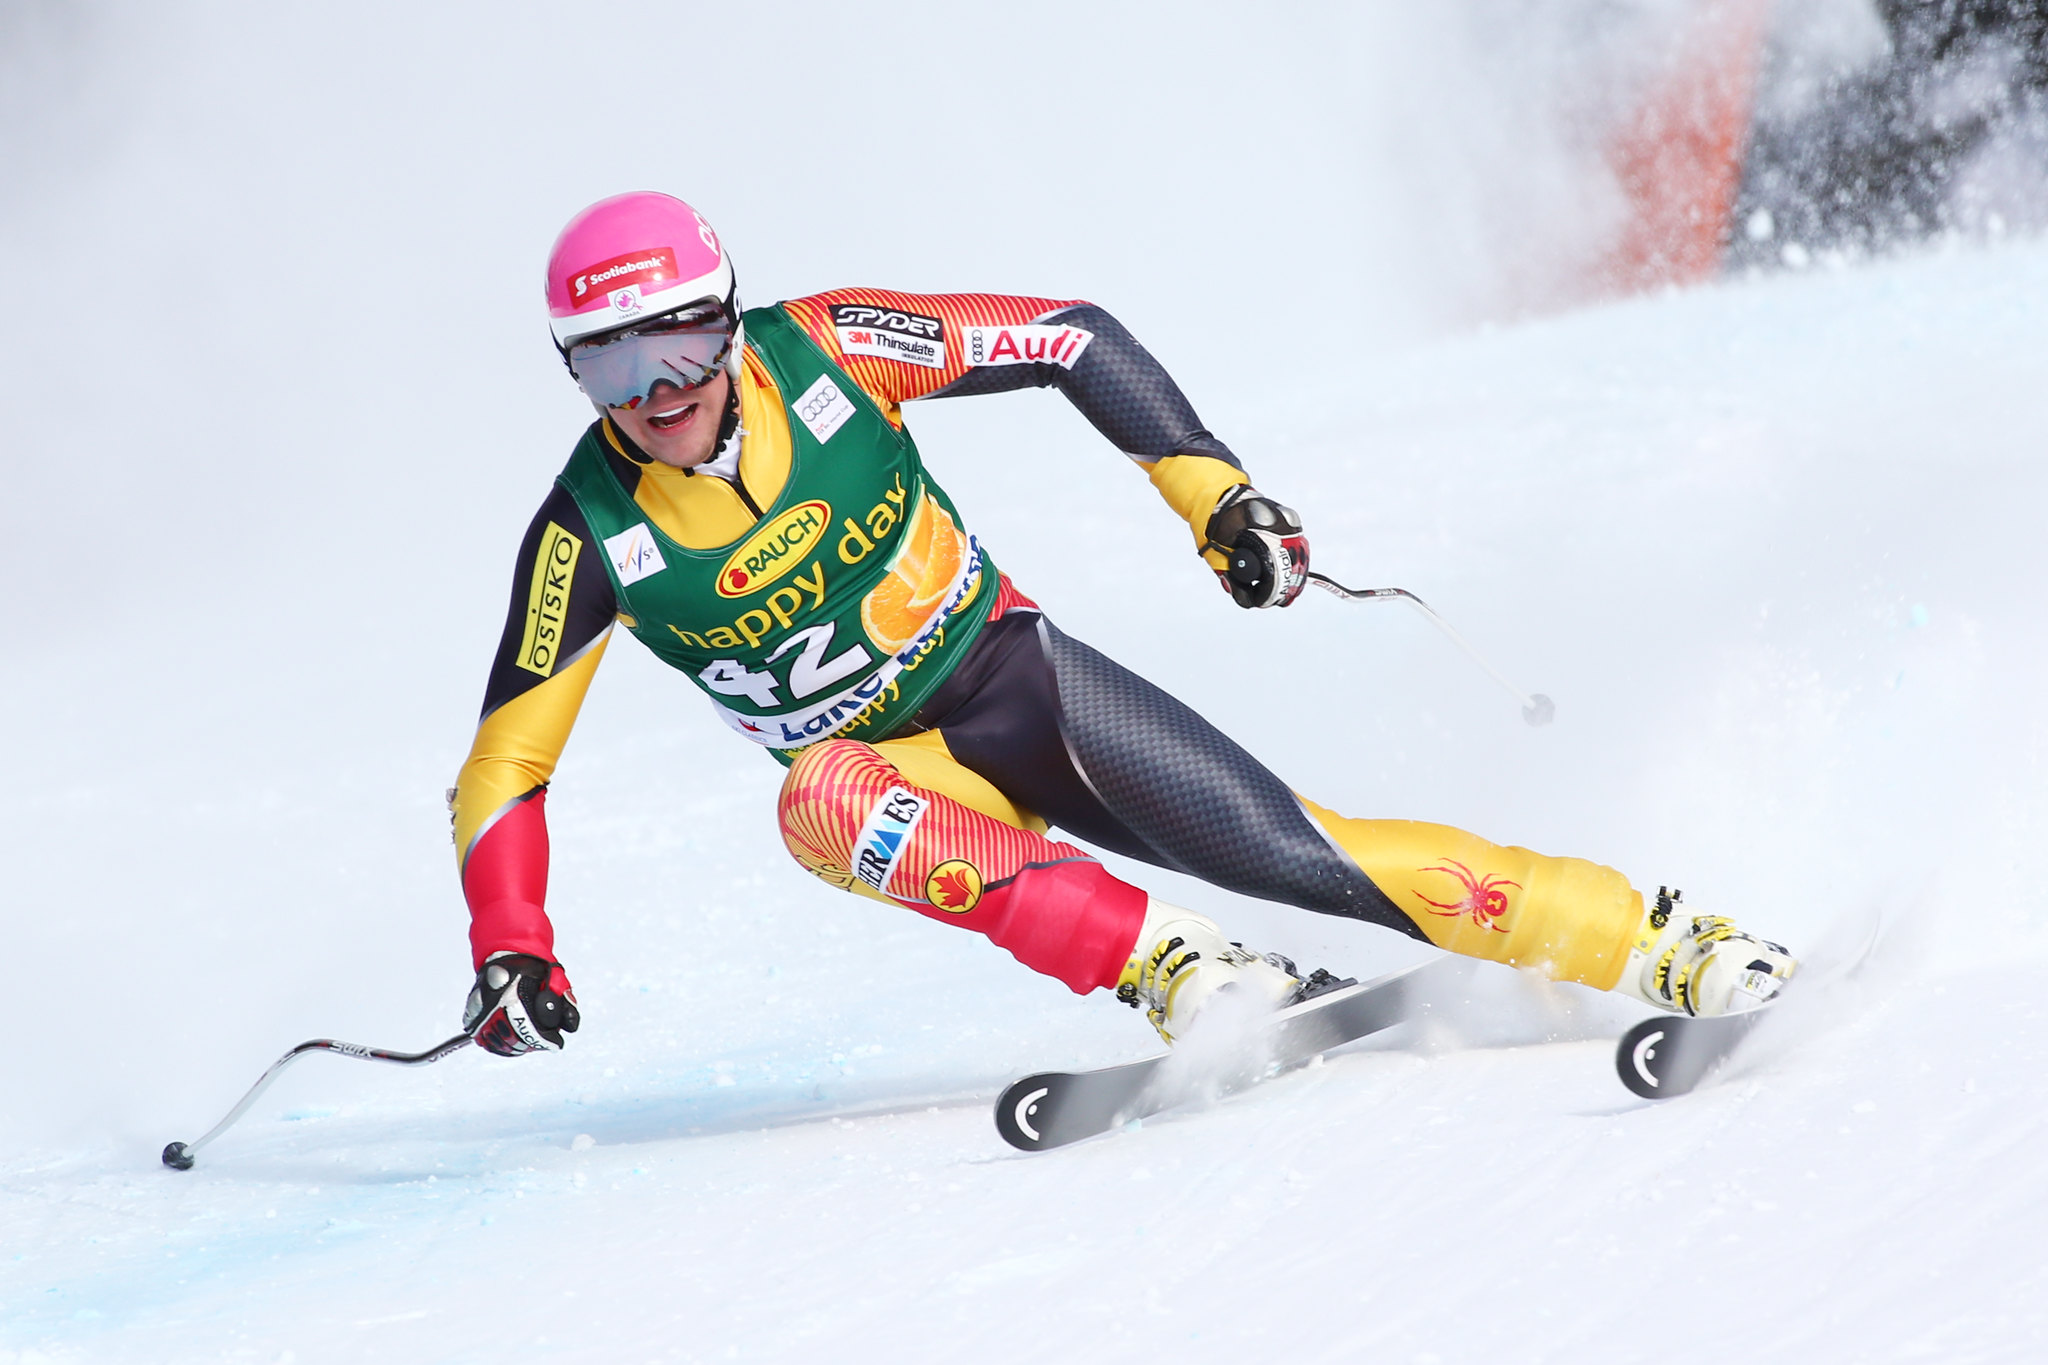 Ben Thomsen in action during World Cup super-G in Lake Louise.